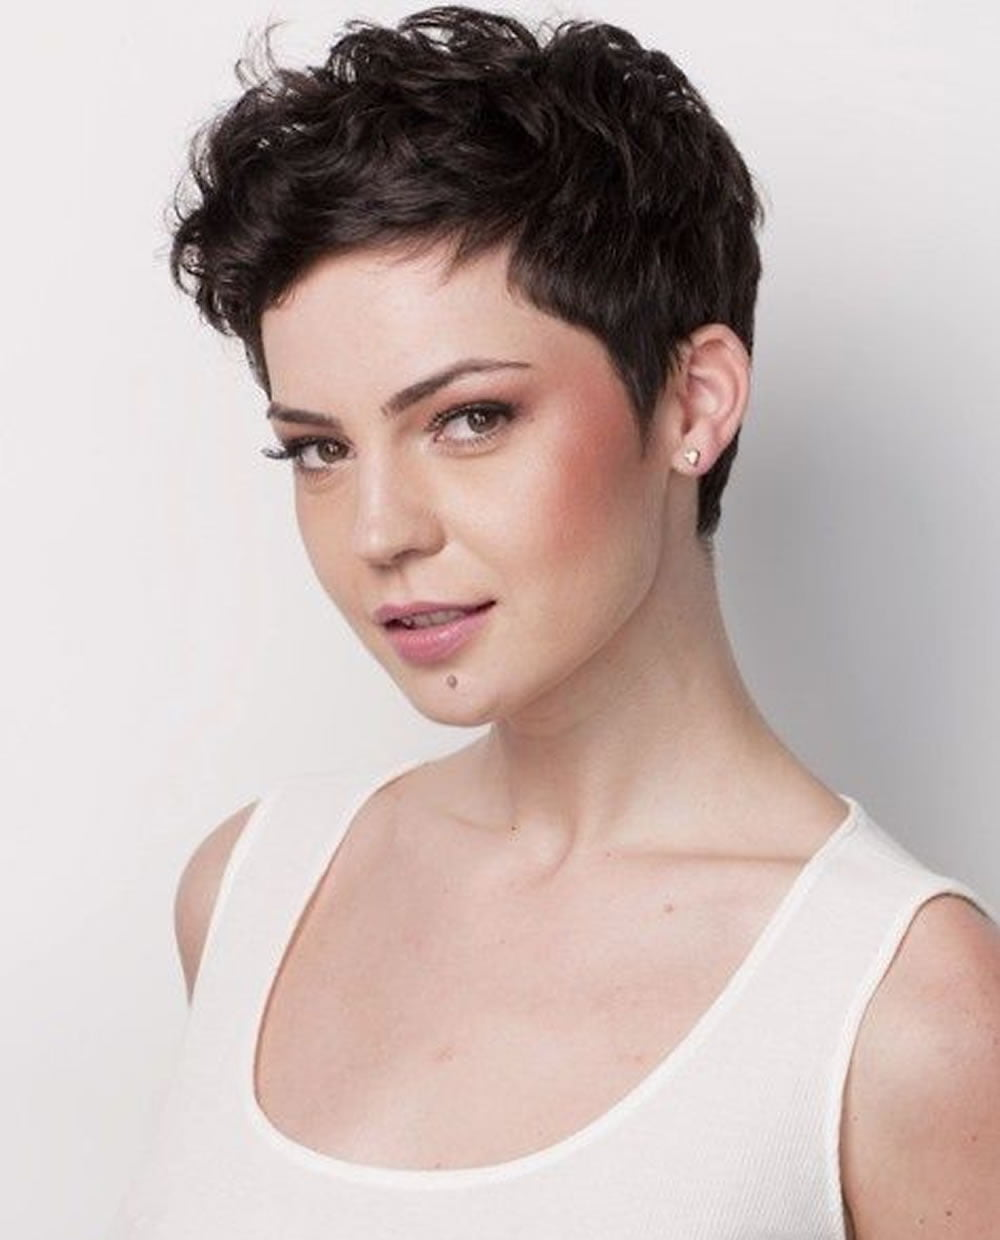 top 100 beautiful short haircuts for women 2018 | images+videos